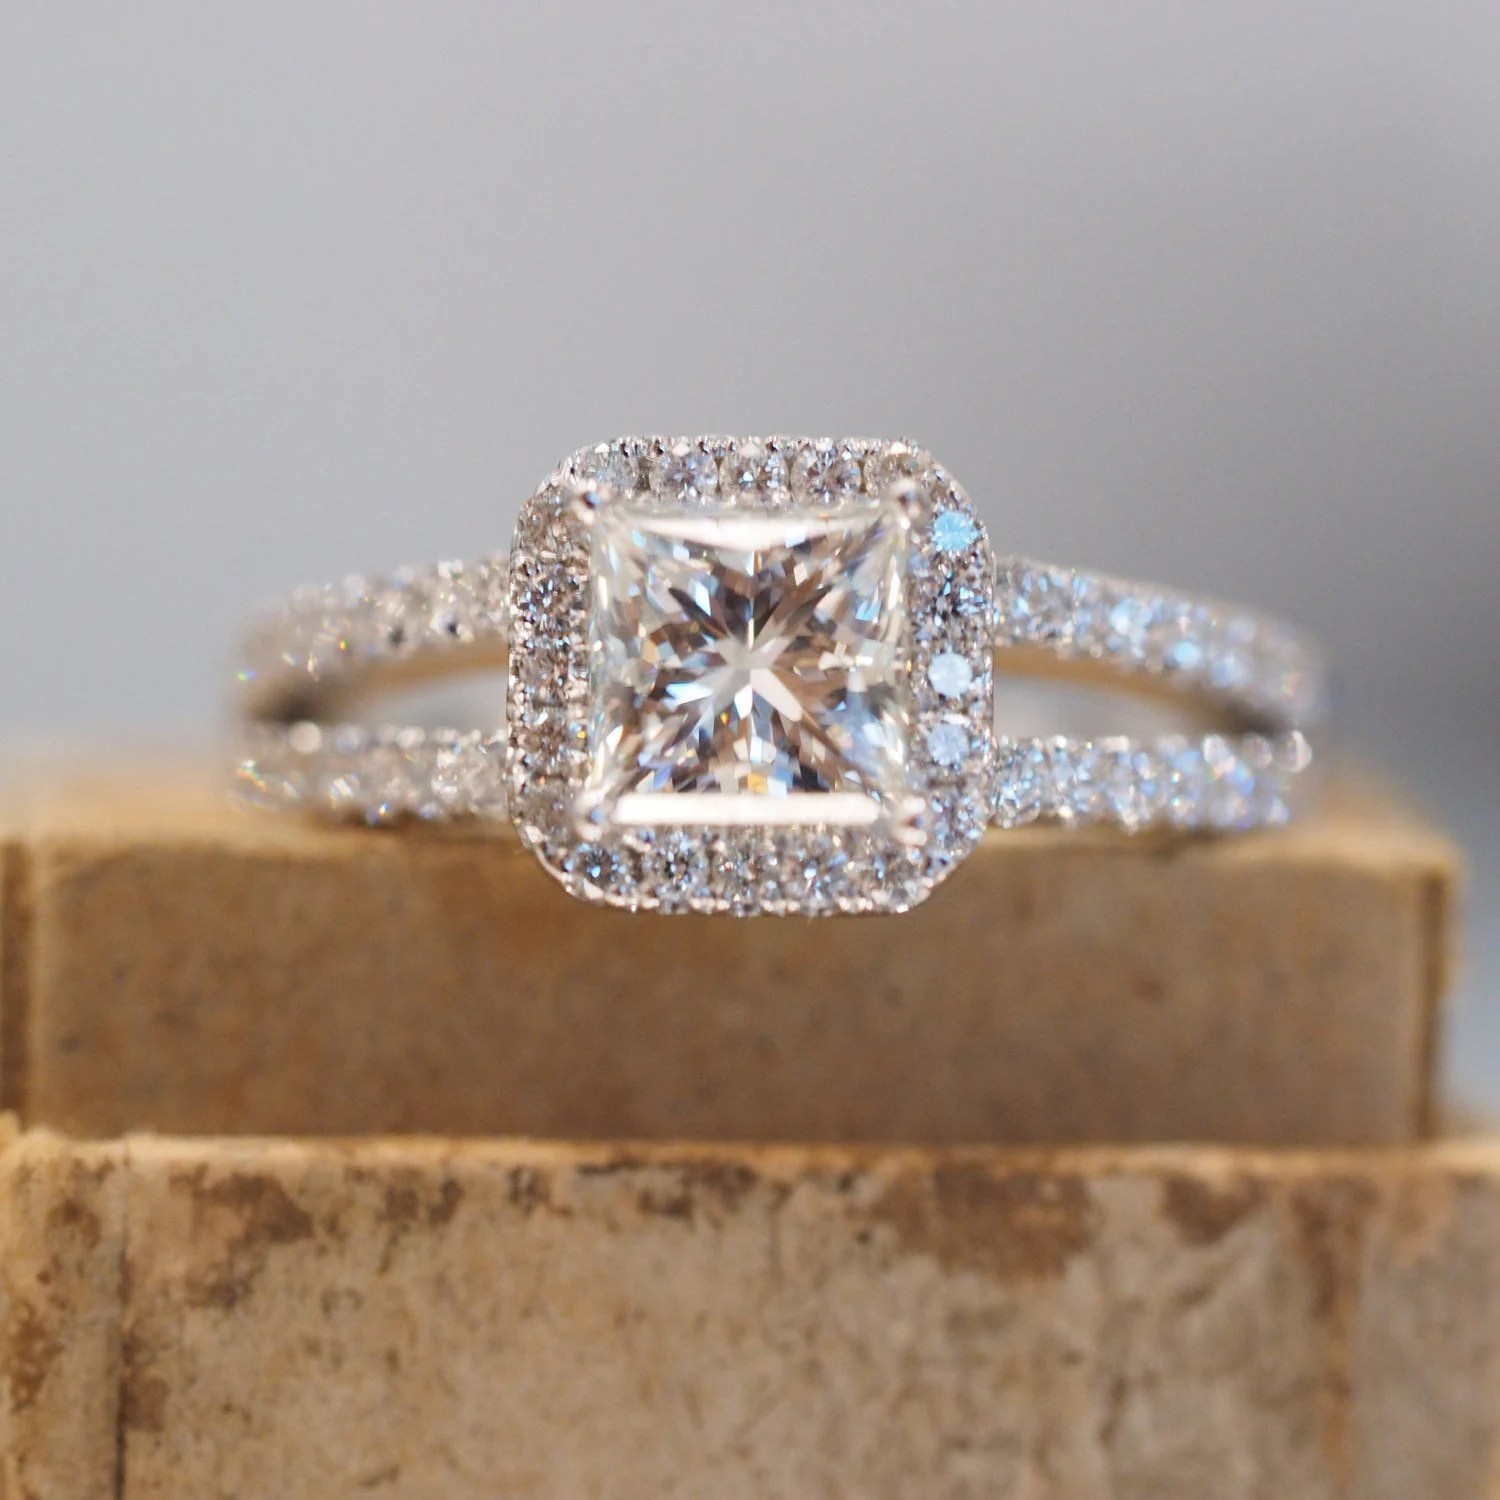 micro pave band micro pave wedding band Halo Princess Cut Engagement Ring with Split Shank Band in White Gold With Diamonds Micropave 18k White Gold